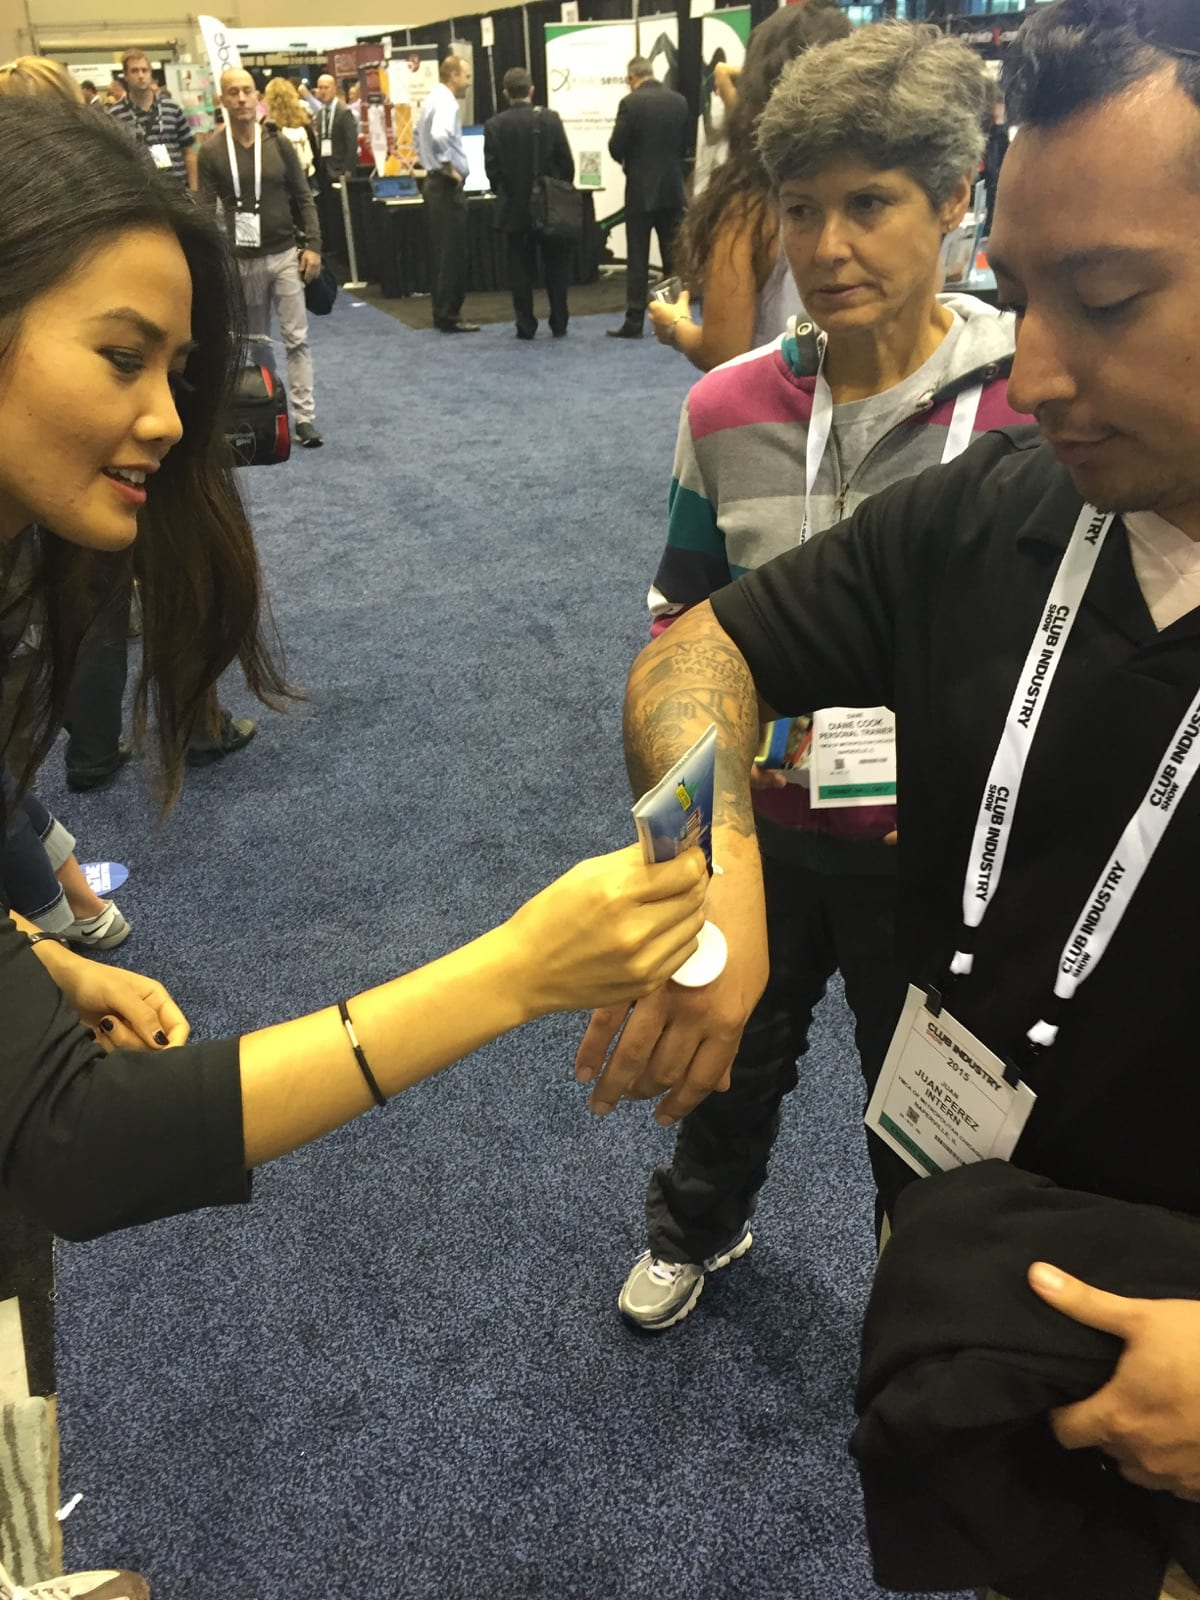 MiraFlex being put on person at Chicago Club Industry Expo 2015